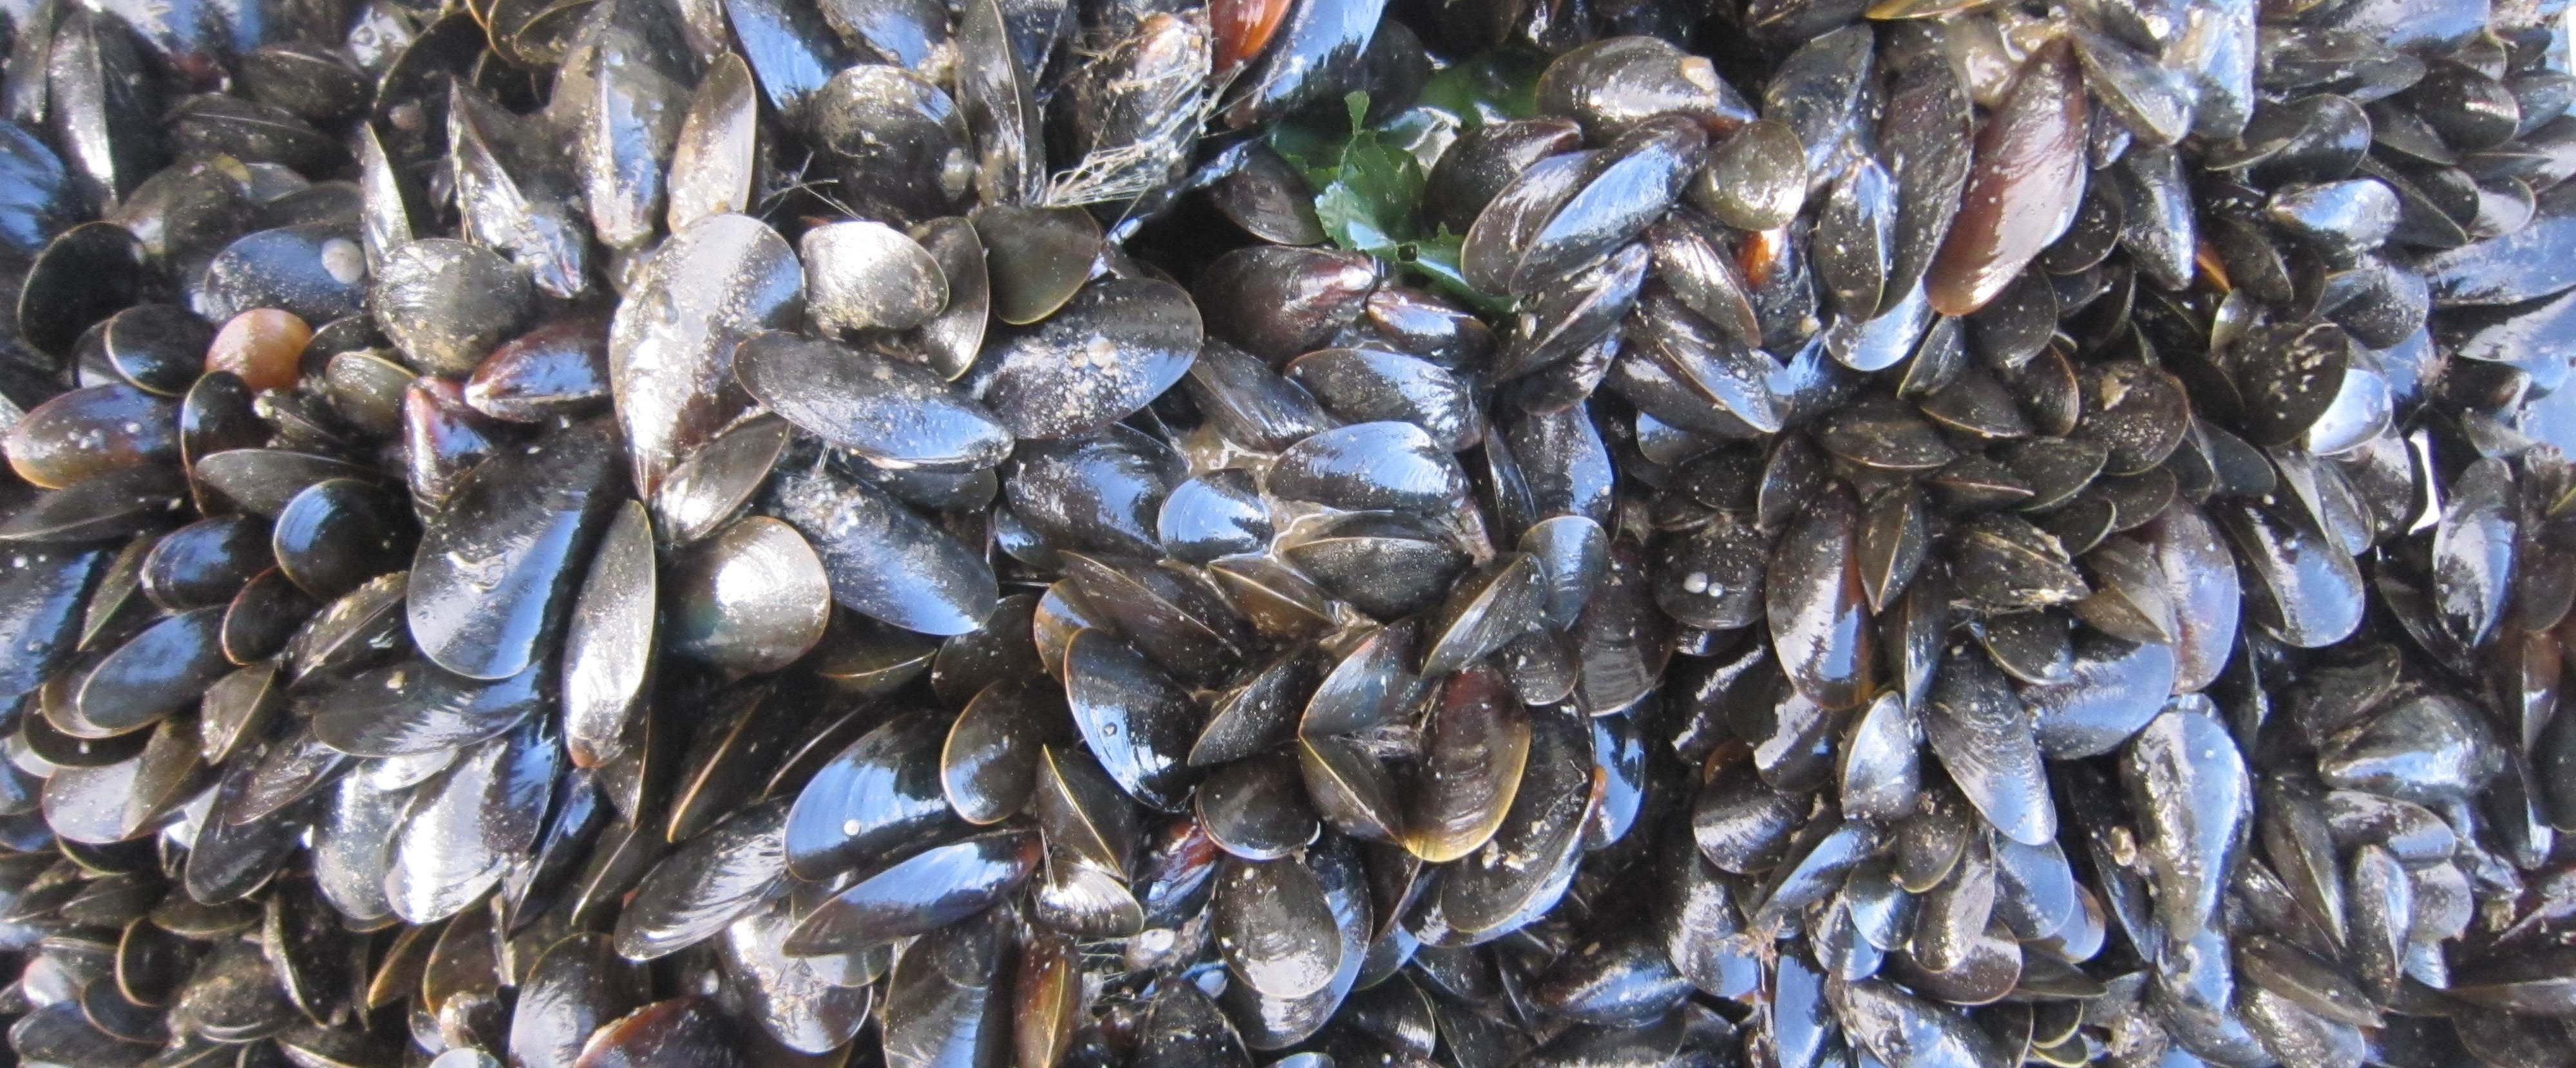 Mussels-NH Sea Grant